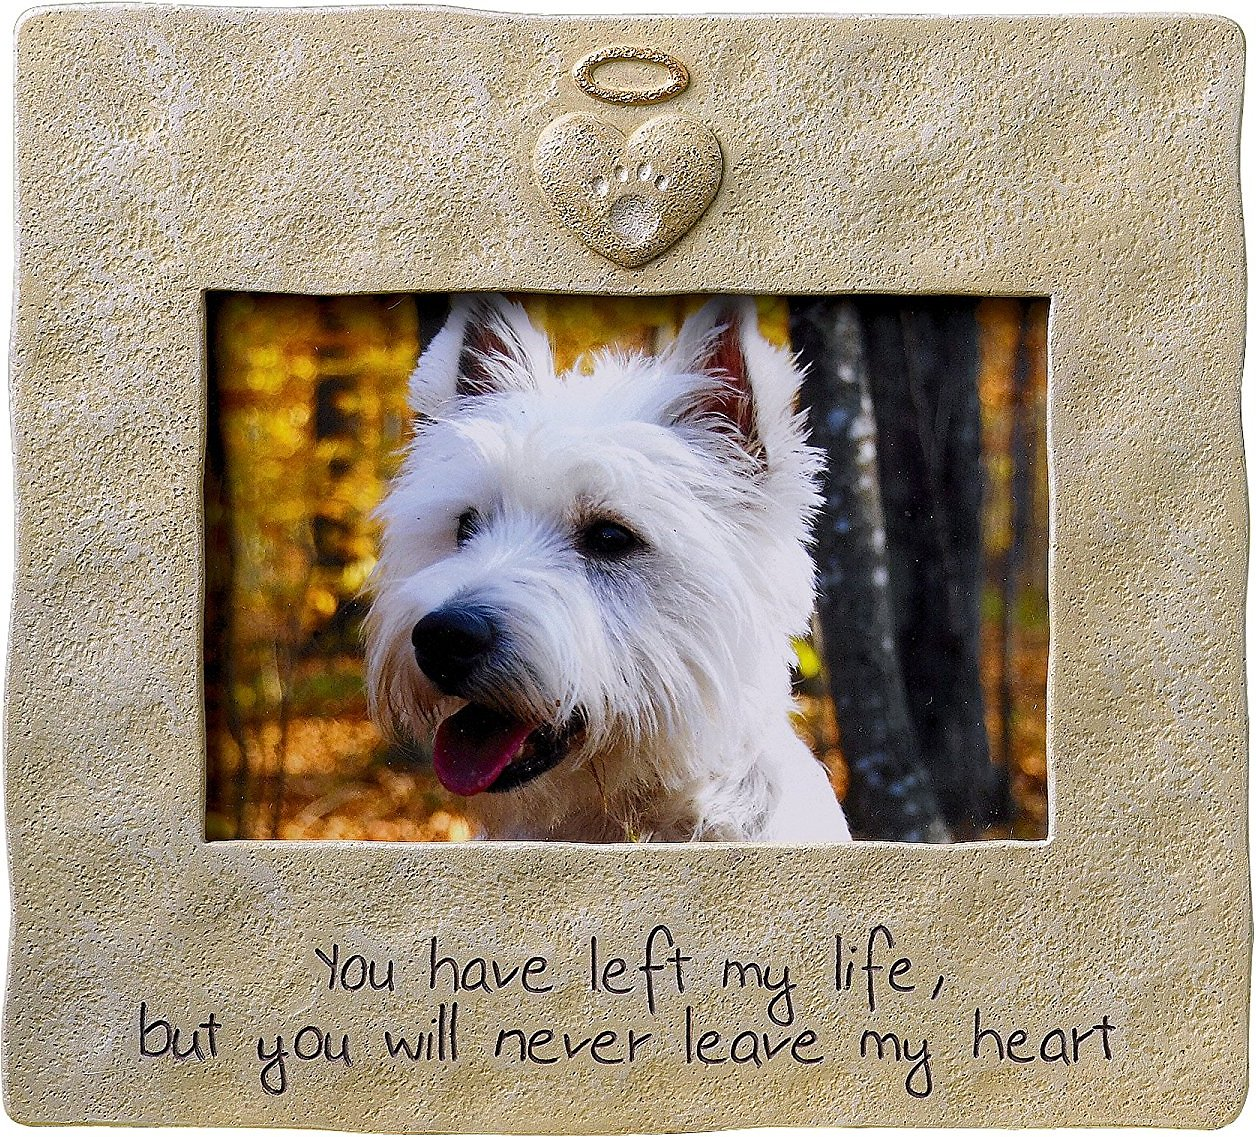 Grasslands Road Dog & Cat Memorial Picture Frame, 4 x 6 - Chewy.com